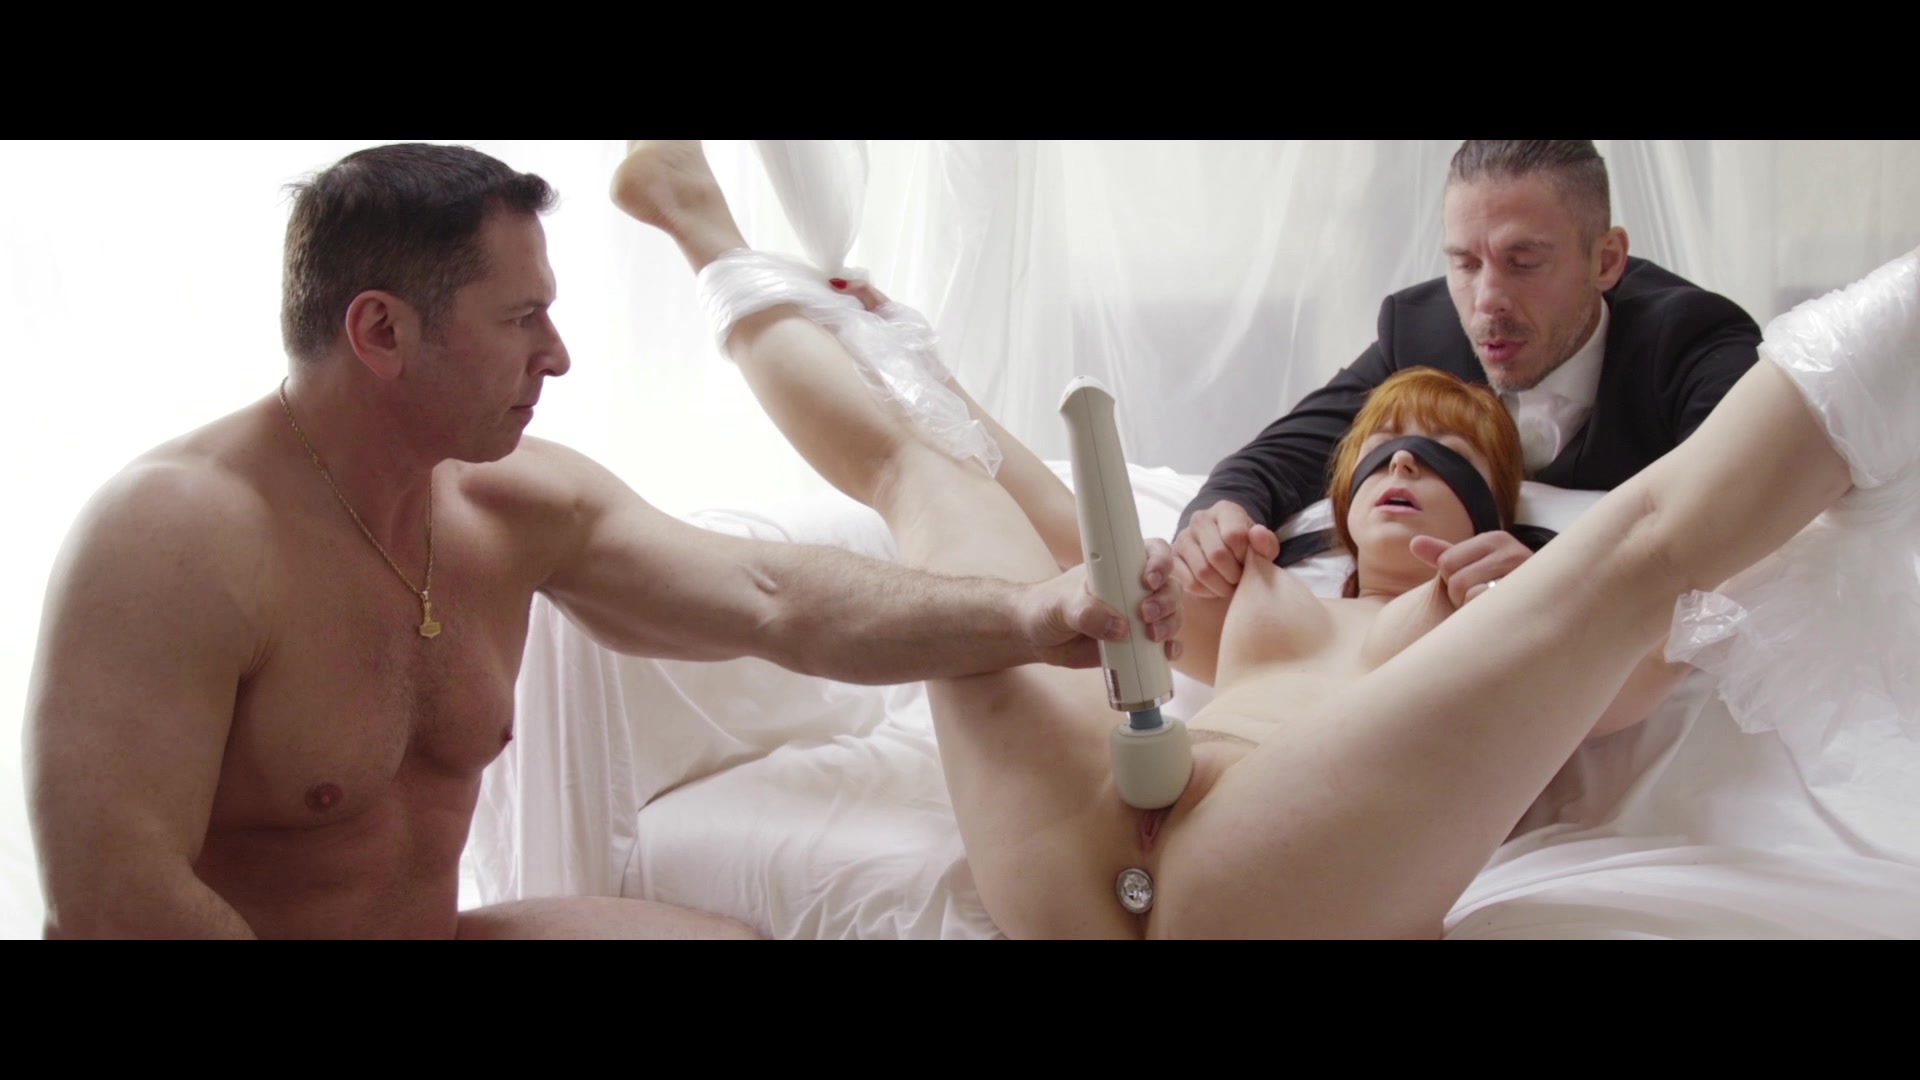 Scene with John Strong, Mick Blue and Penny Pax - image 10 out of 20